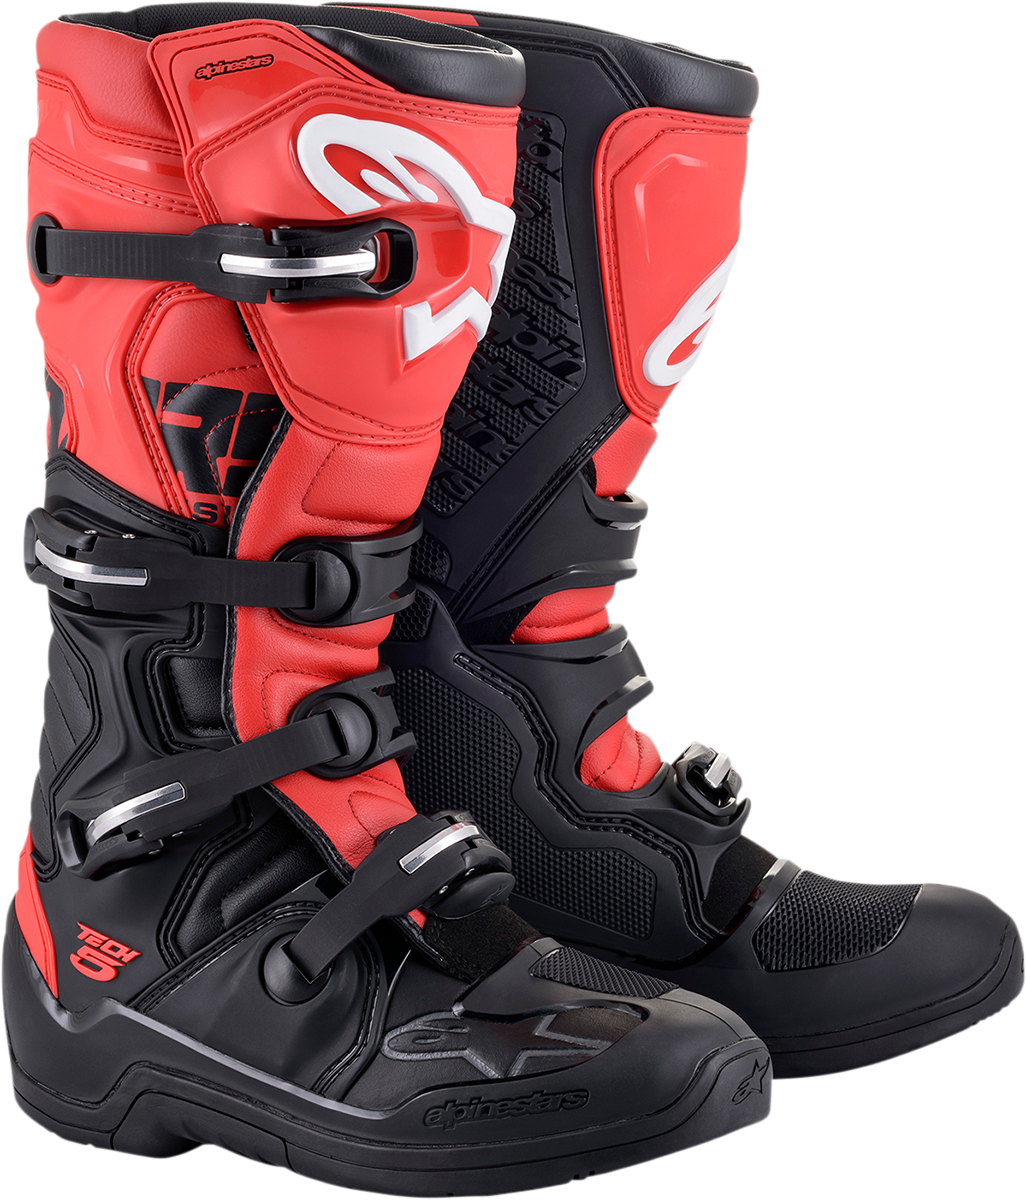 Alpinestars Tech 5 Mens Black Red Motorcycle Riding Dirt Bike Racing Boots MX